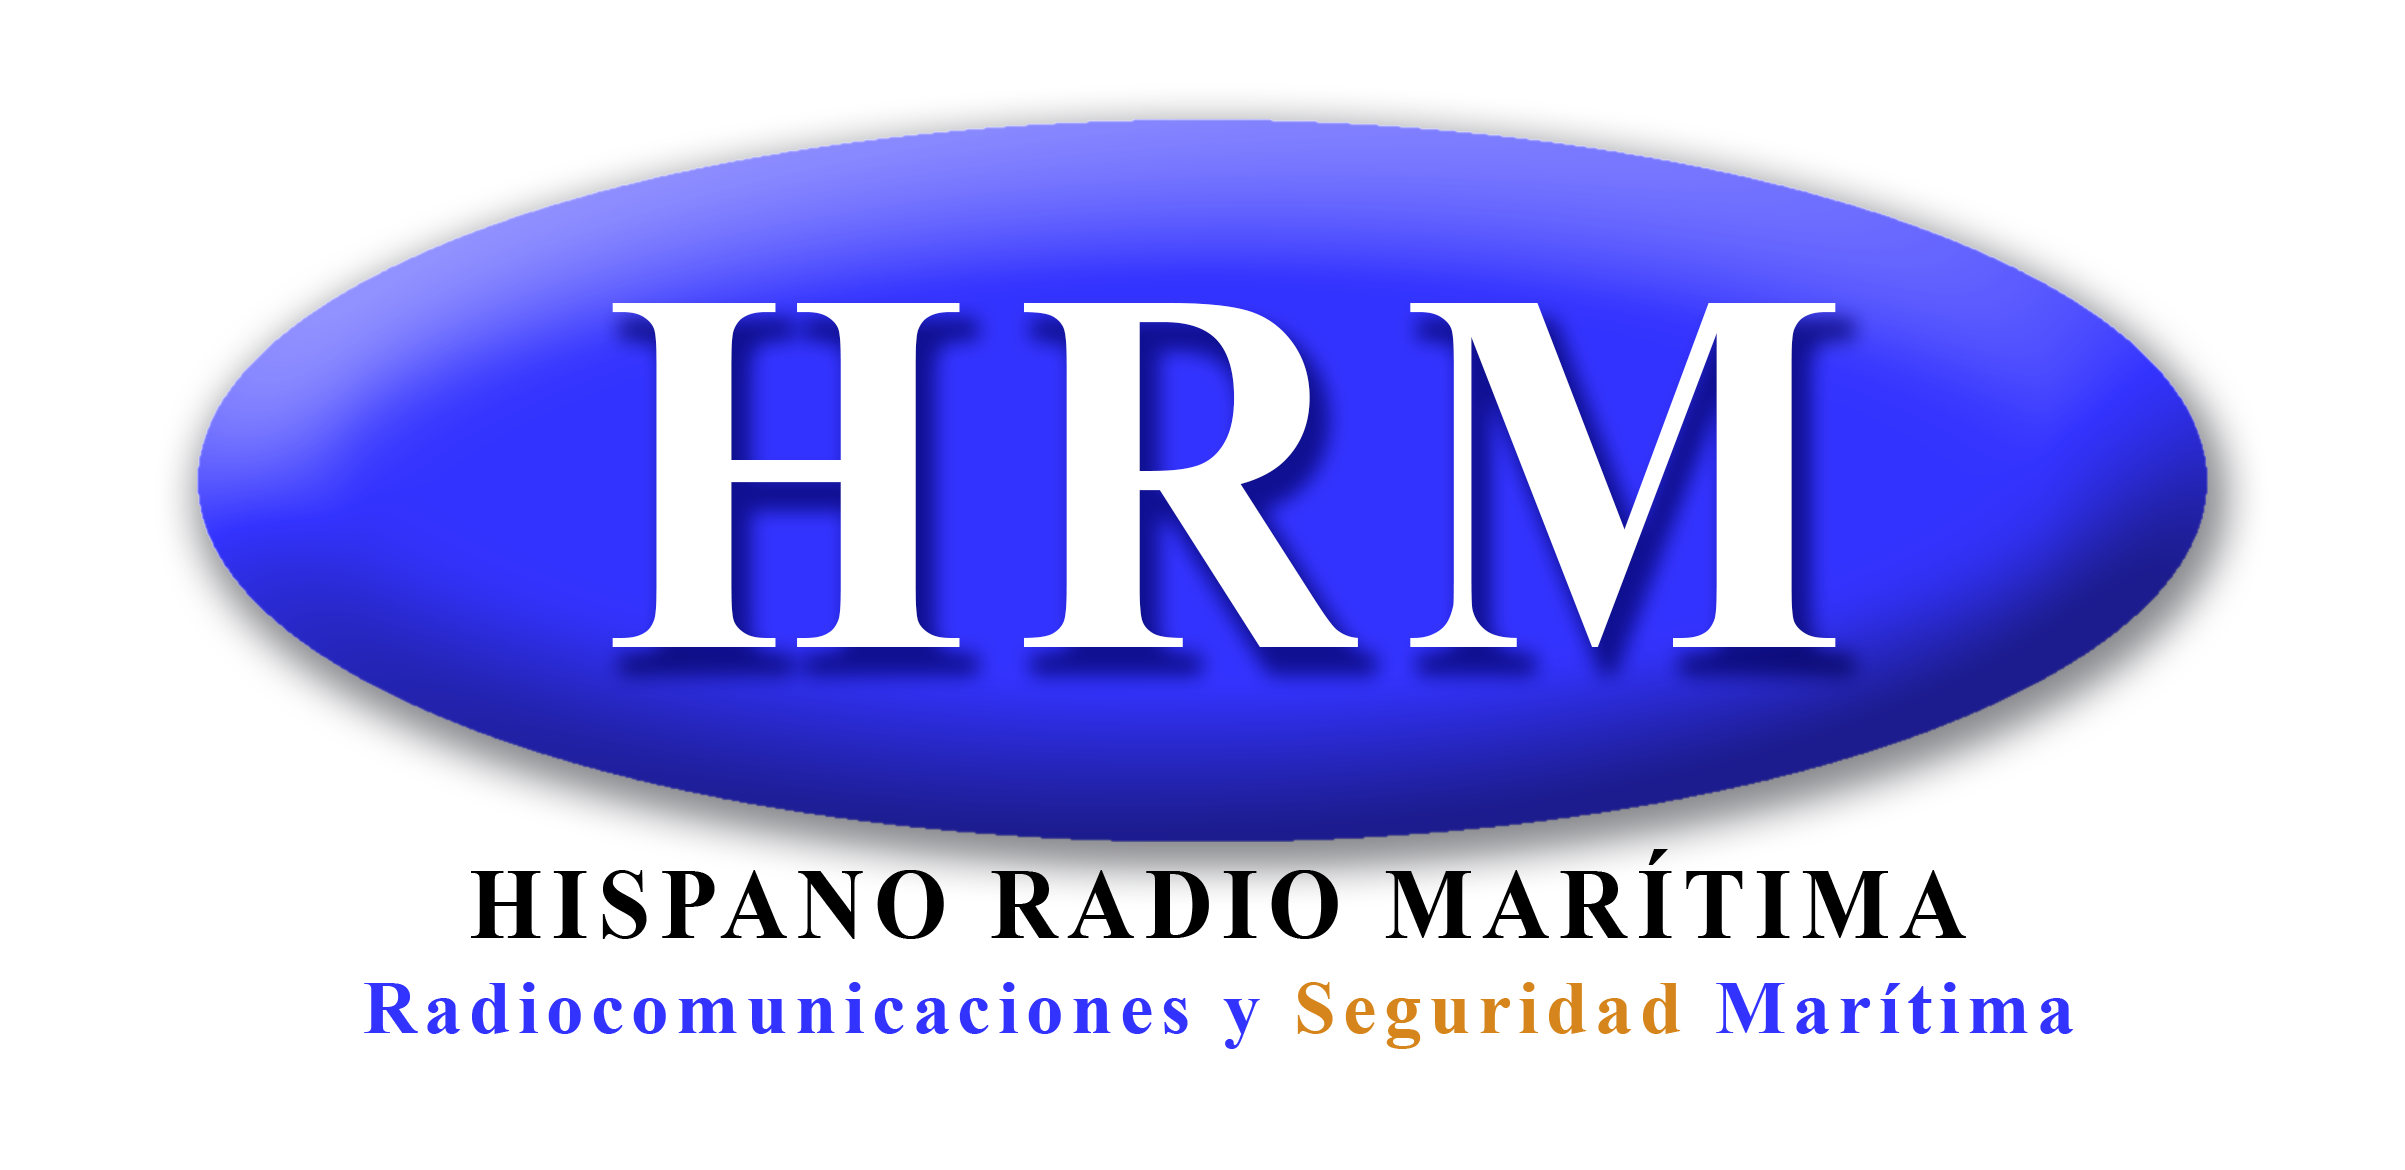 HISPANO RADIO MARITIMA